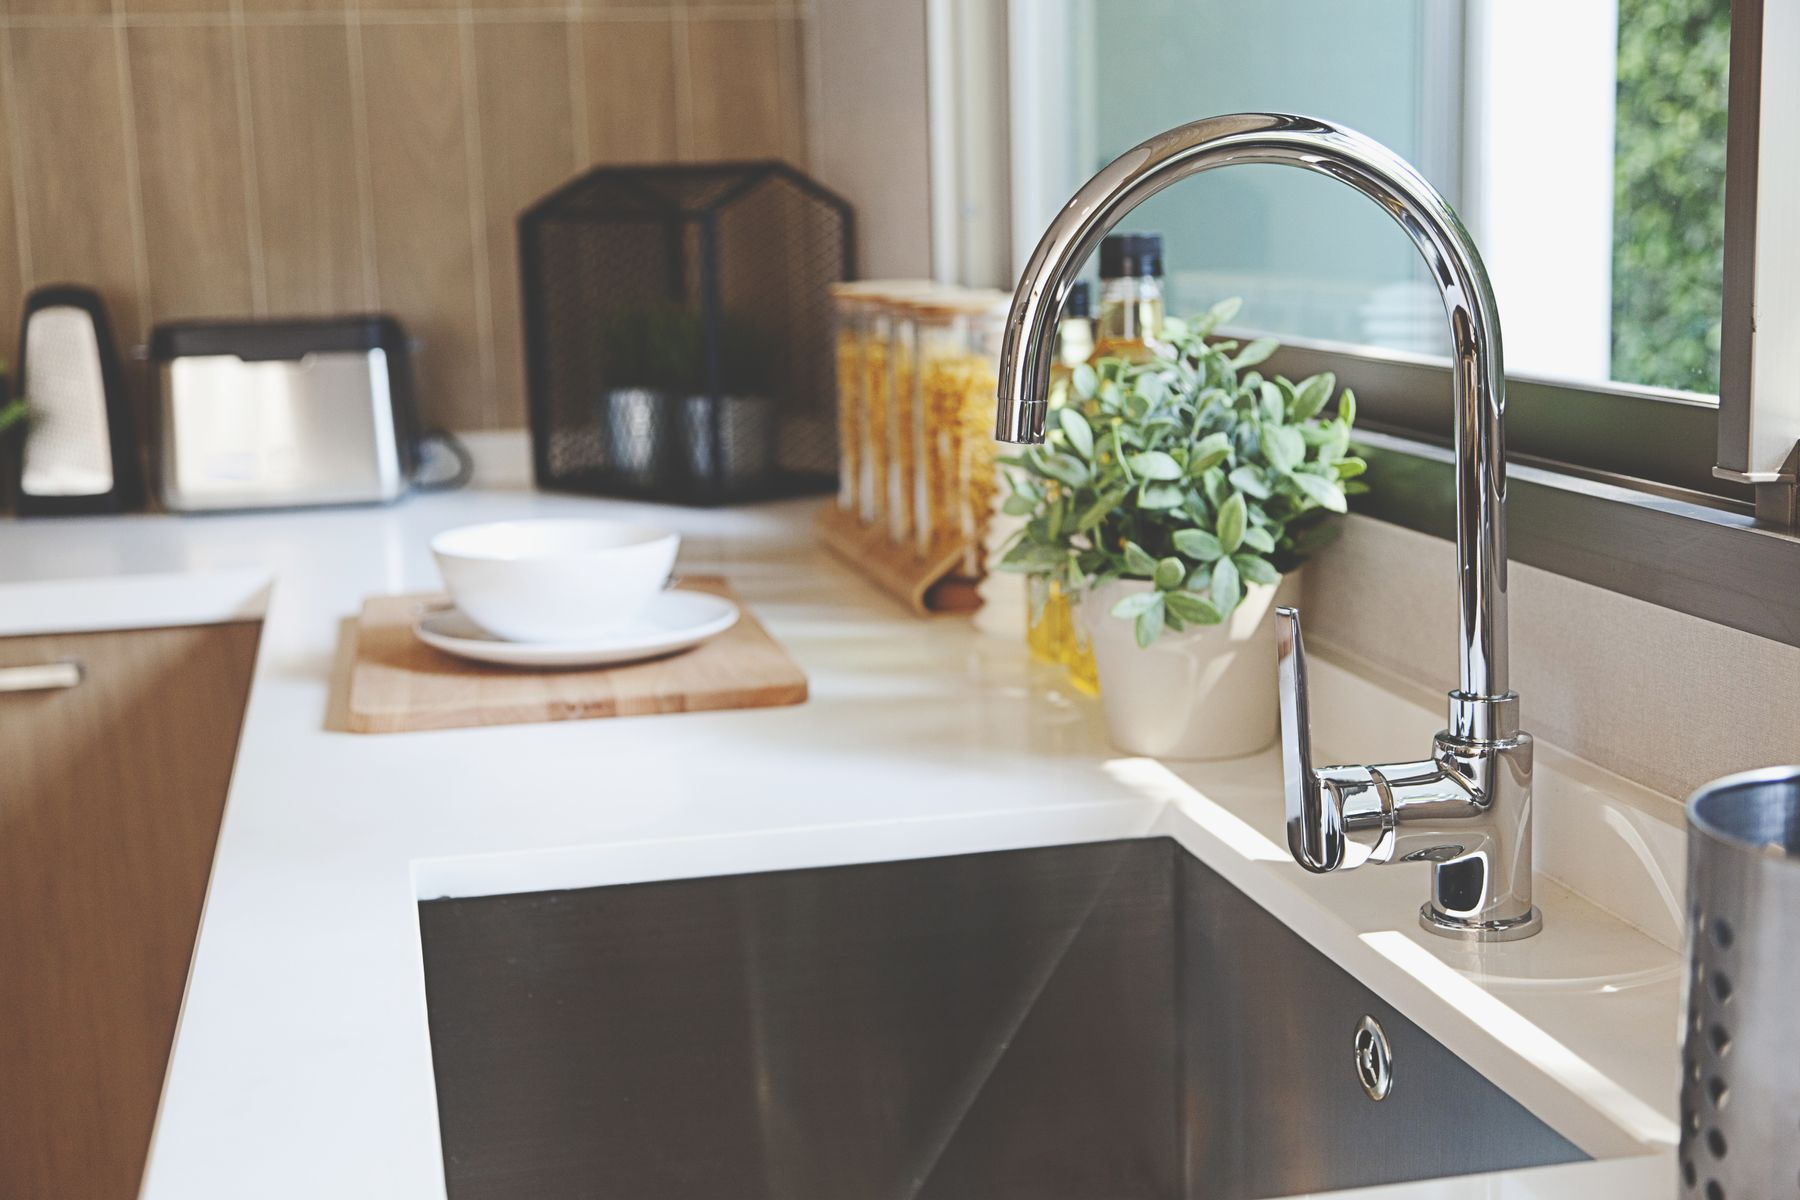 How to clean kitchen sink drainage